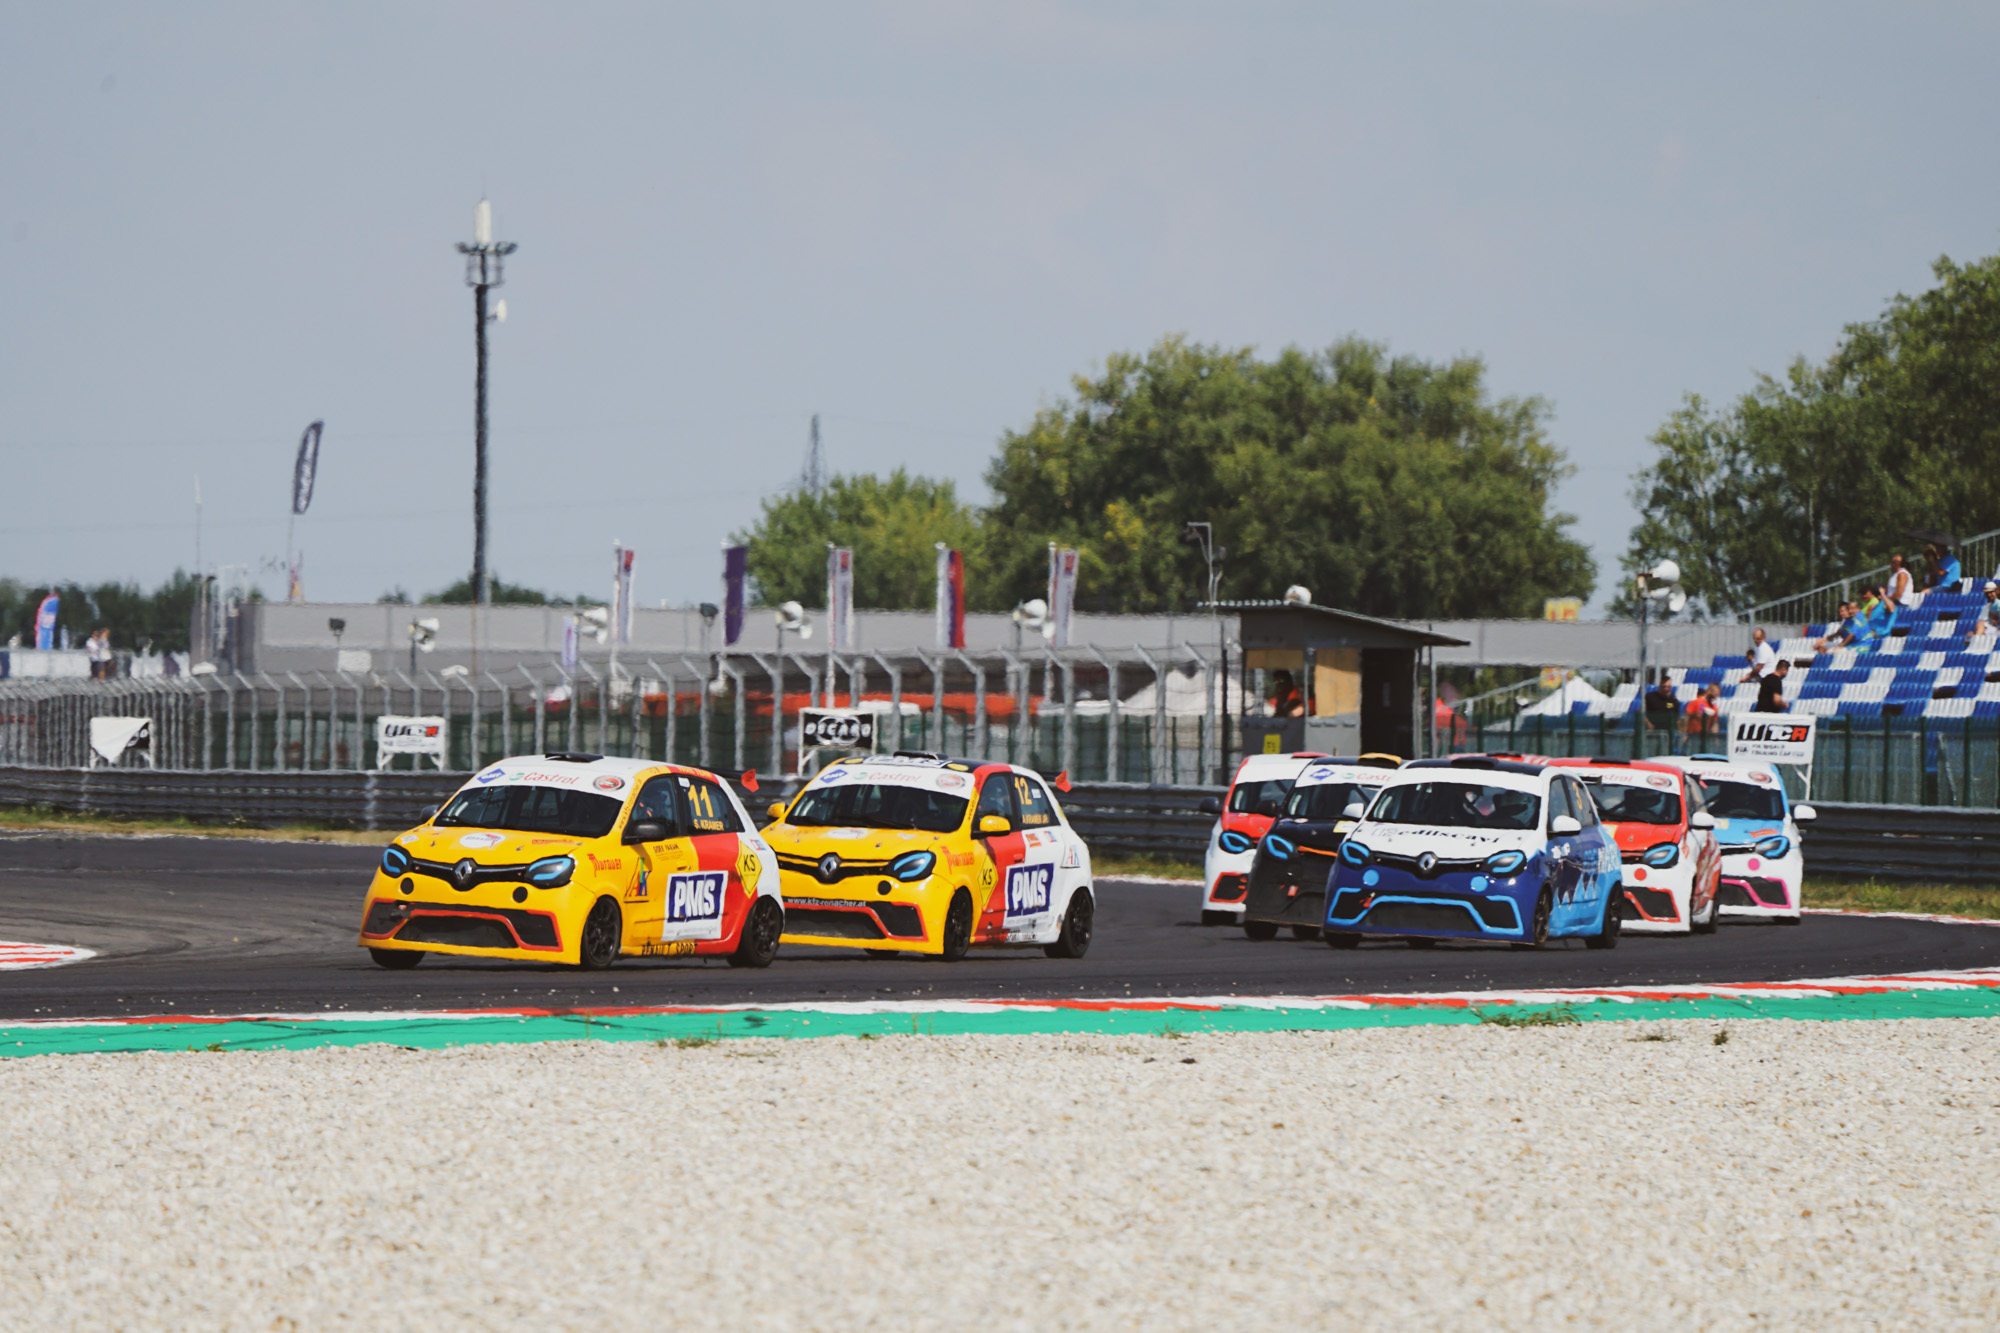 Cruze Cup is decided, while there is still a three-way battle in Twingo Cup